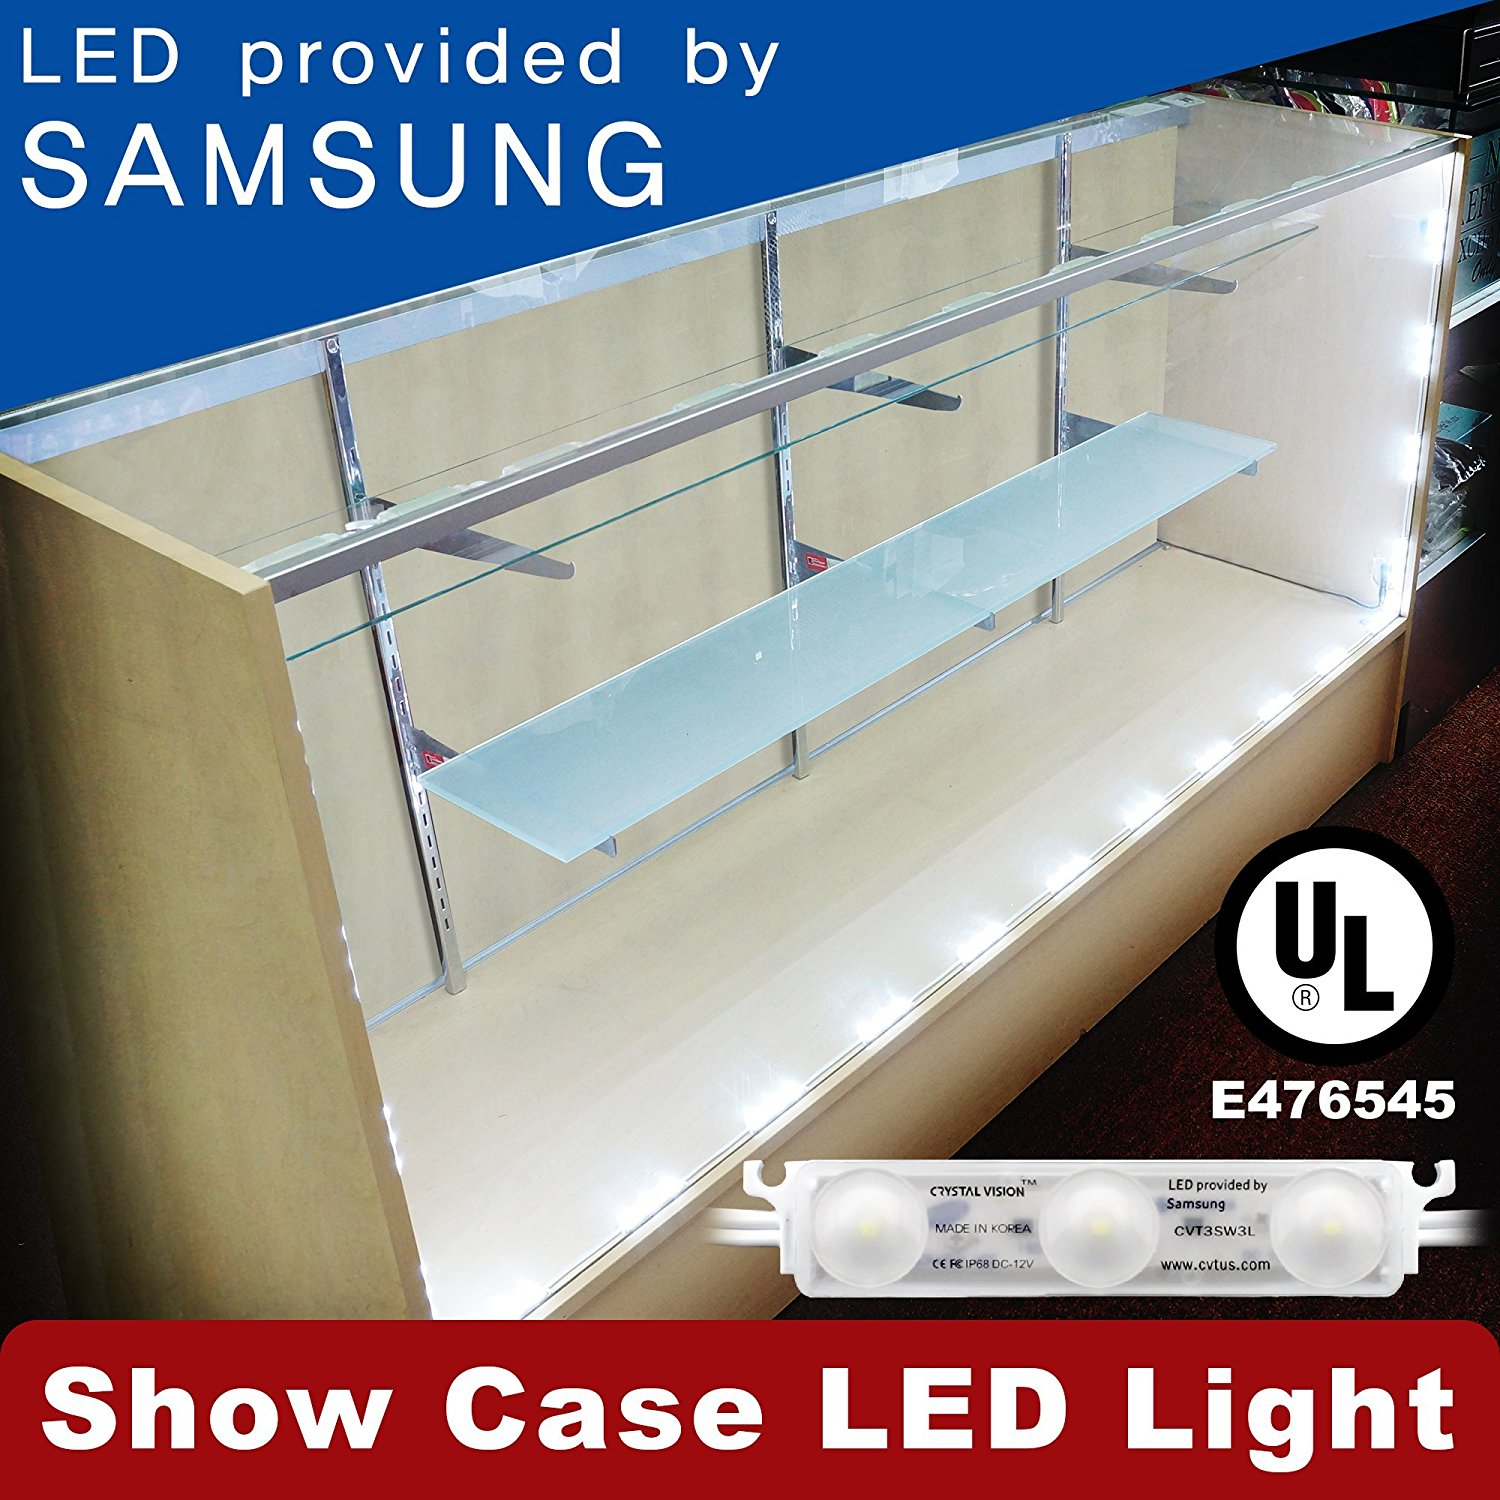 Crystal Vision Premium Samsung Pre-Installed LED Kit for Showcase, Display Case,